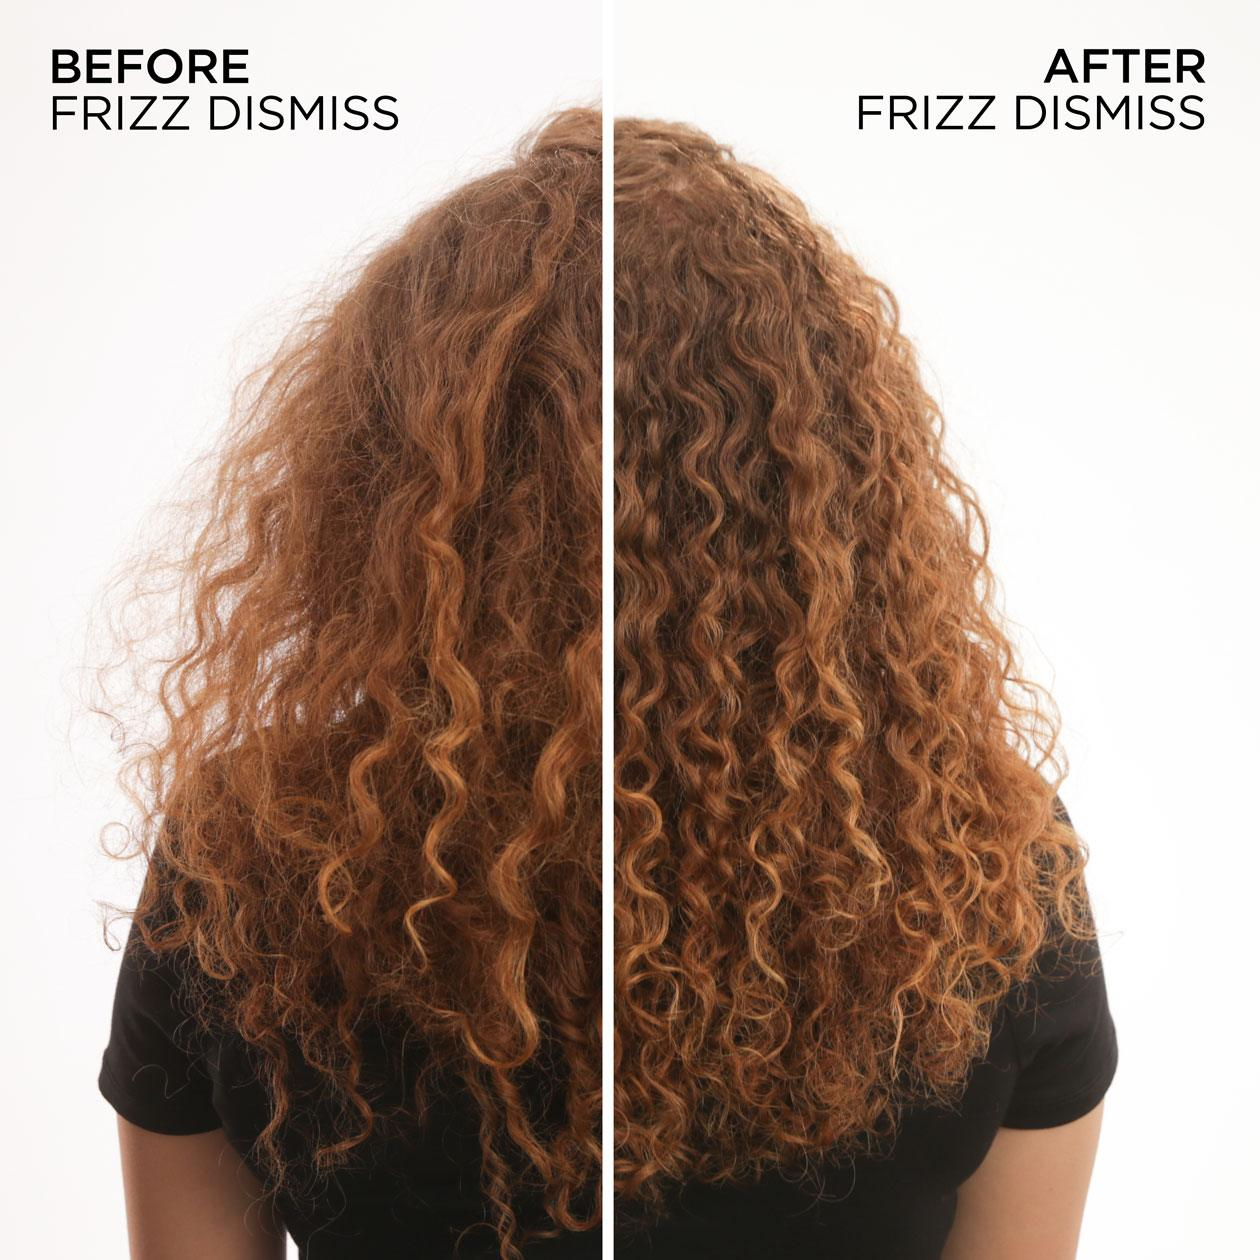 Ulta Frizz Dismiss.jpg